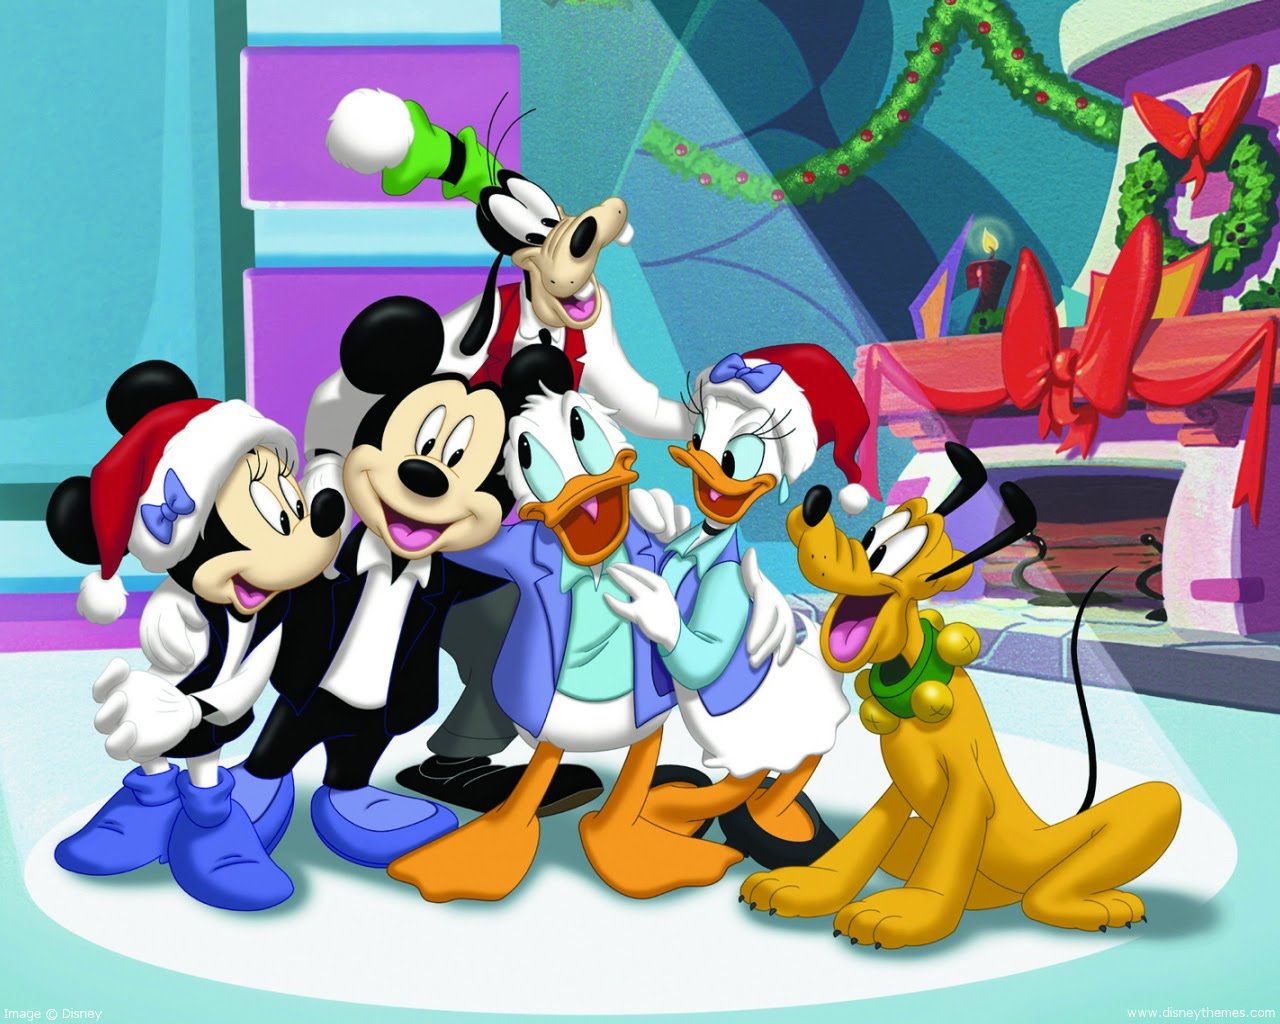 mickeys magical christmas snowed in at the house of mouse is a direct to video movie spin off from the animated television series house of mouse - Mickeys Magical Christmas